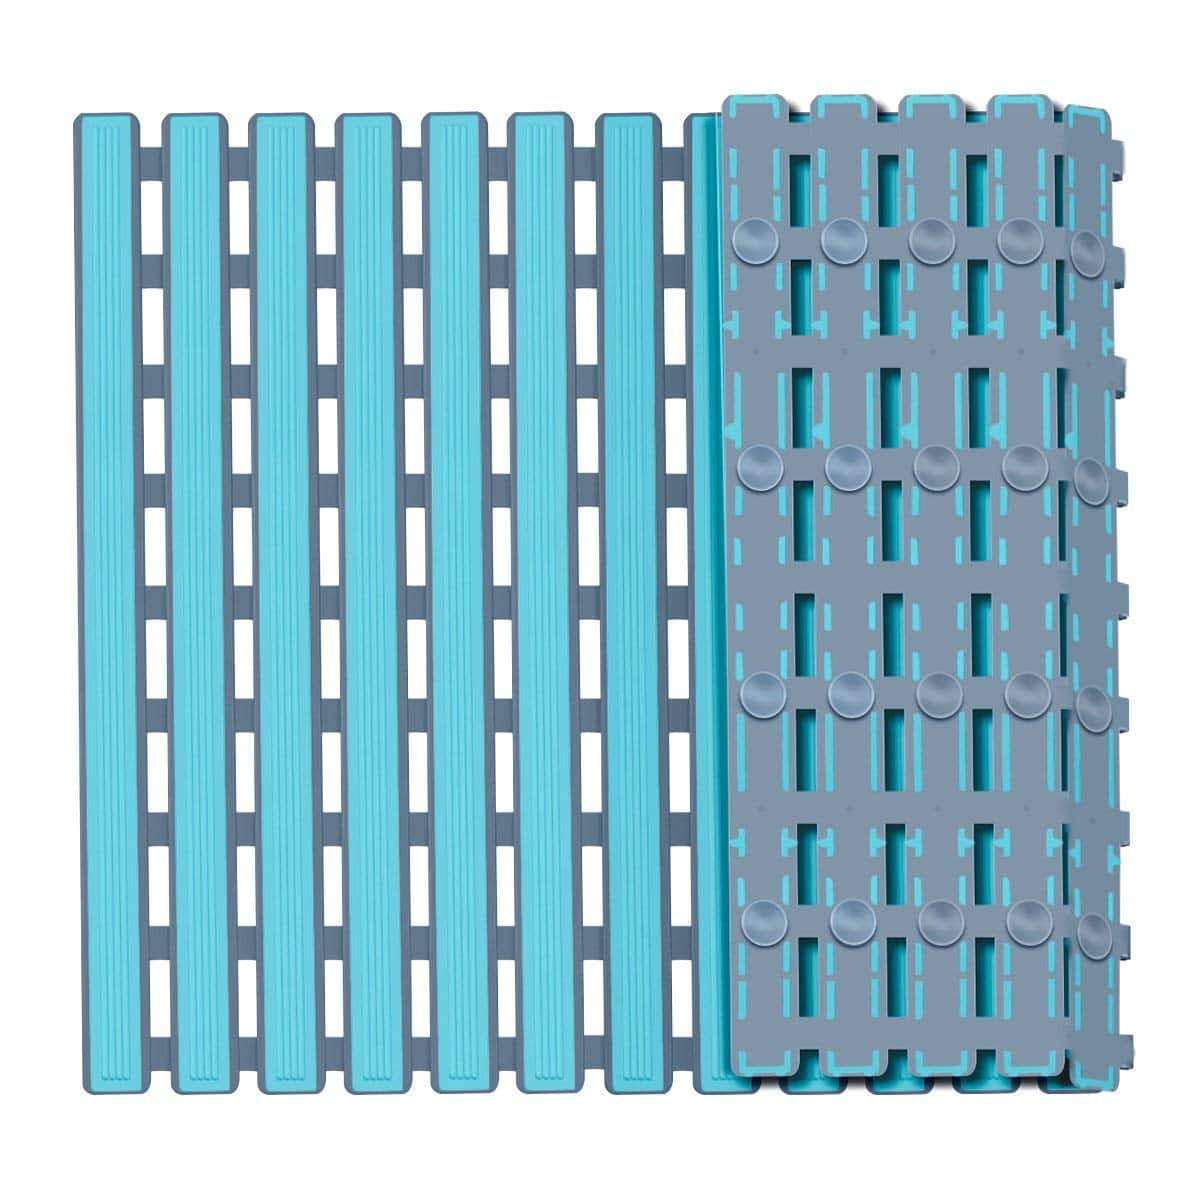 60% OFF - Global-store Non Slip Bath Mat with Suction Cups, Bathroom ...